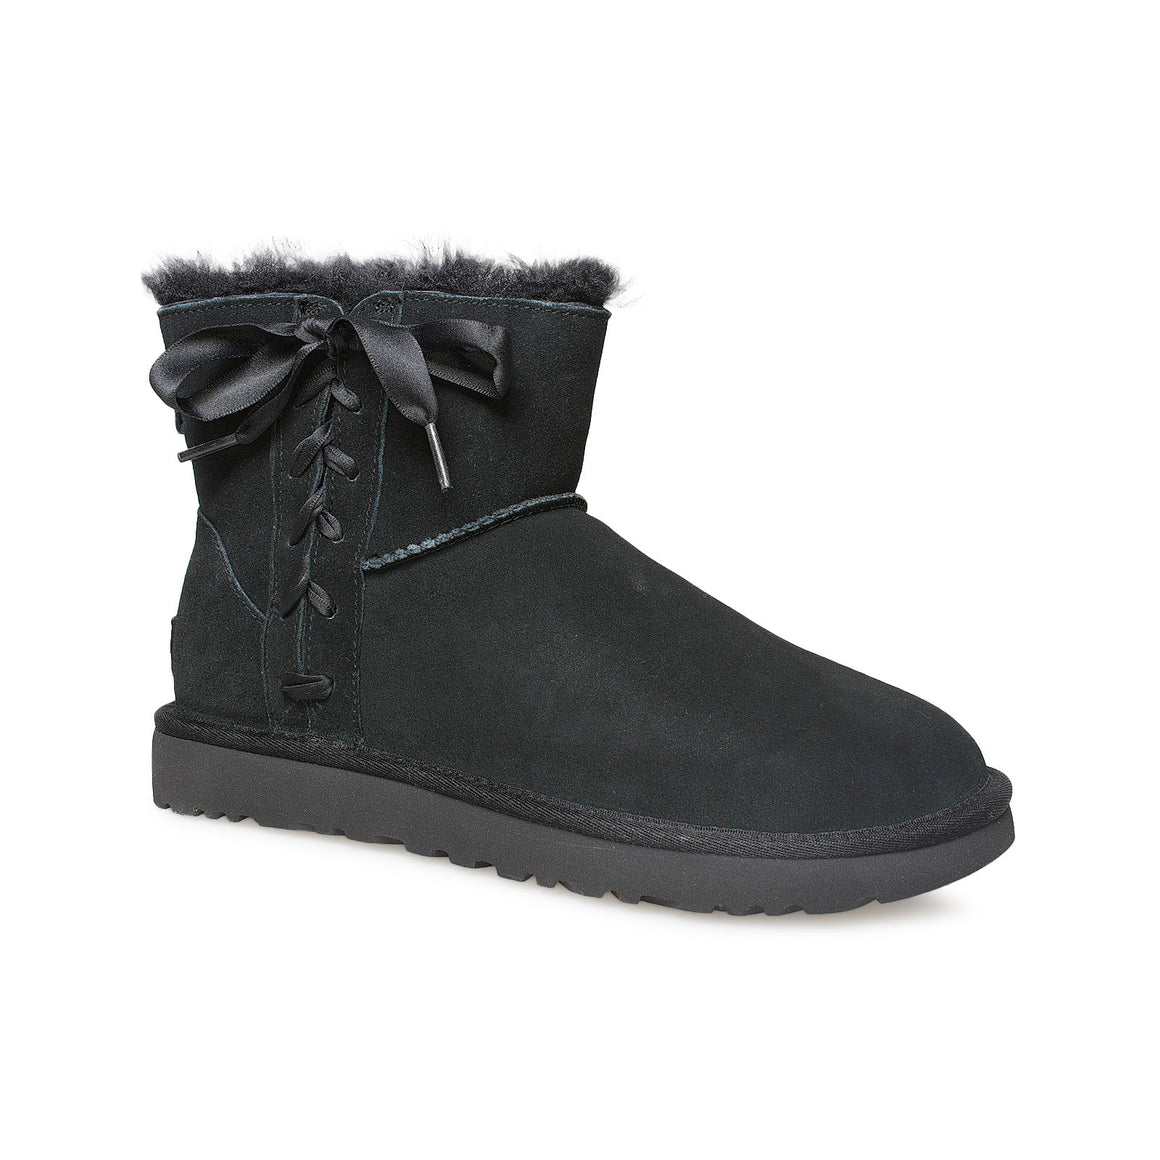 UGG Classic Lace Mini Black Boots - Women's